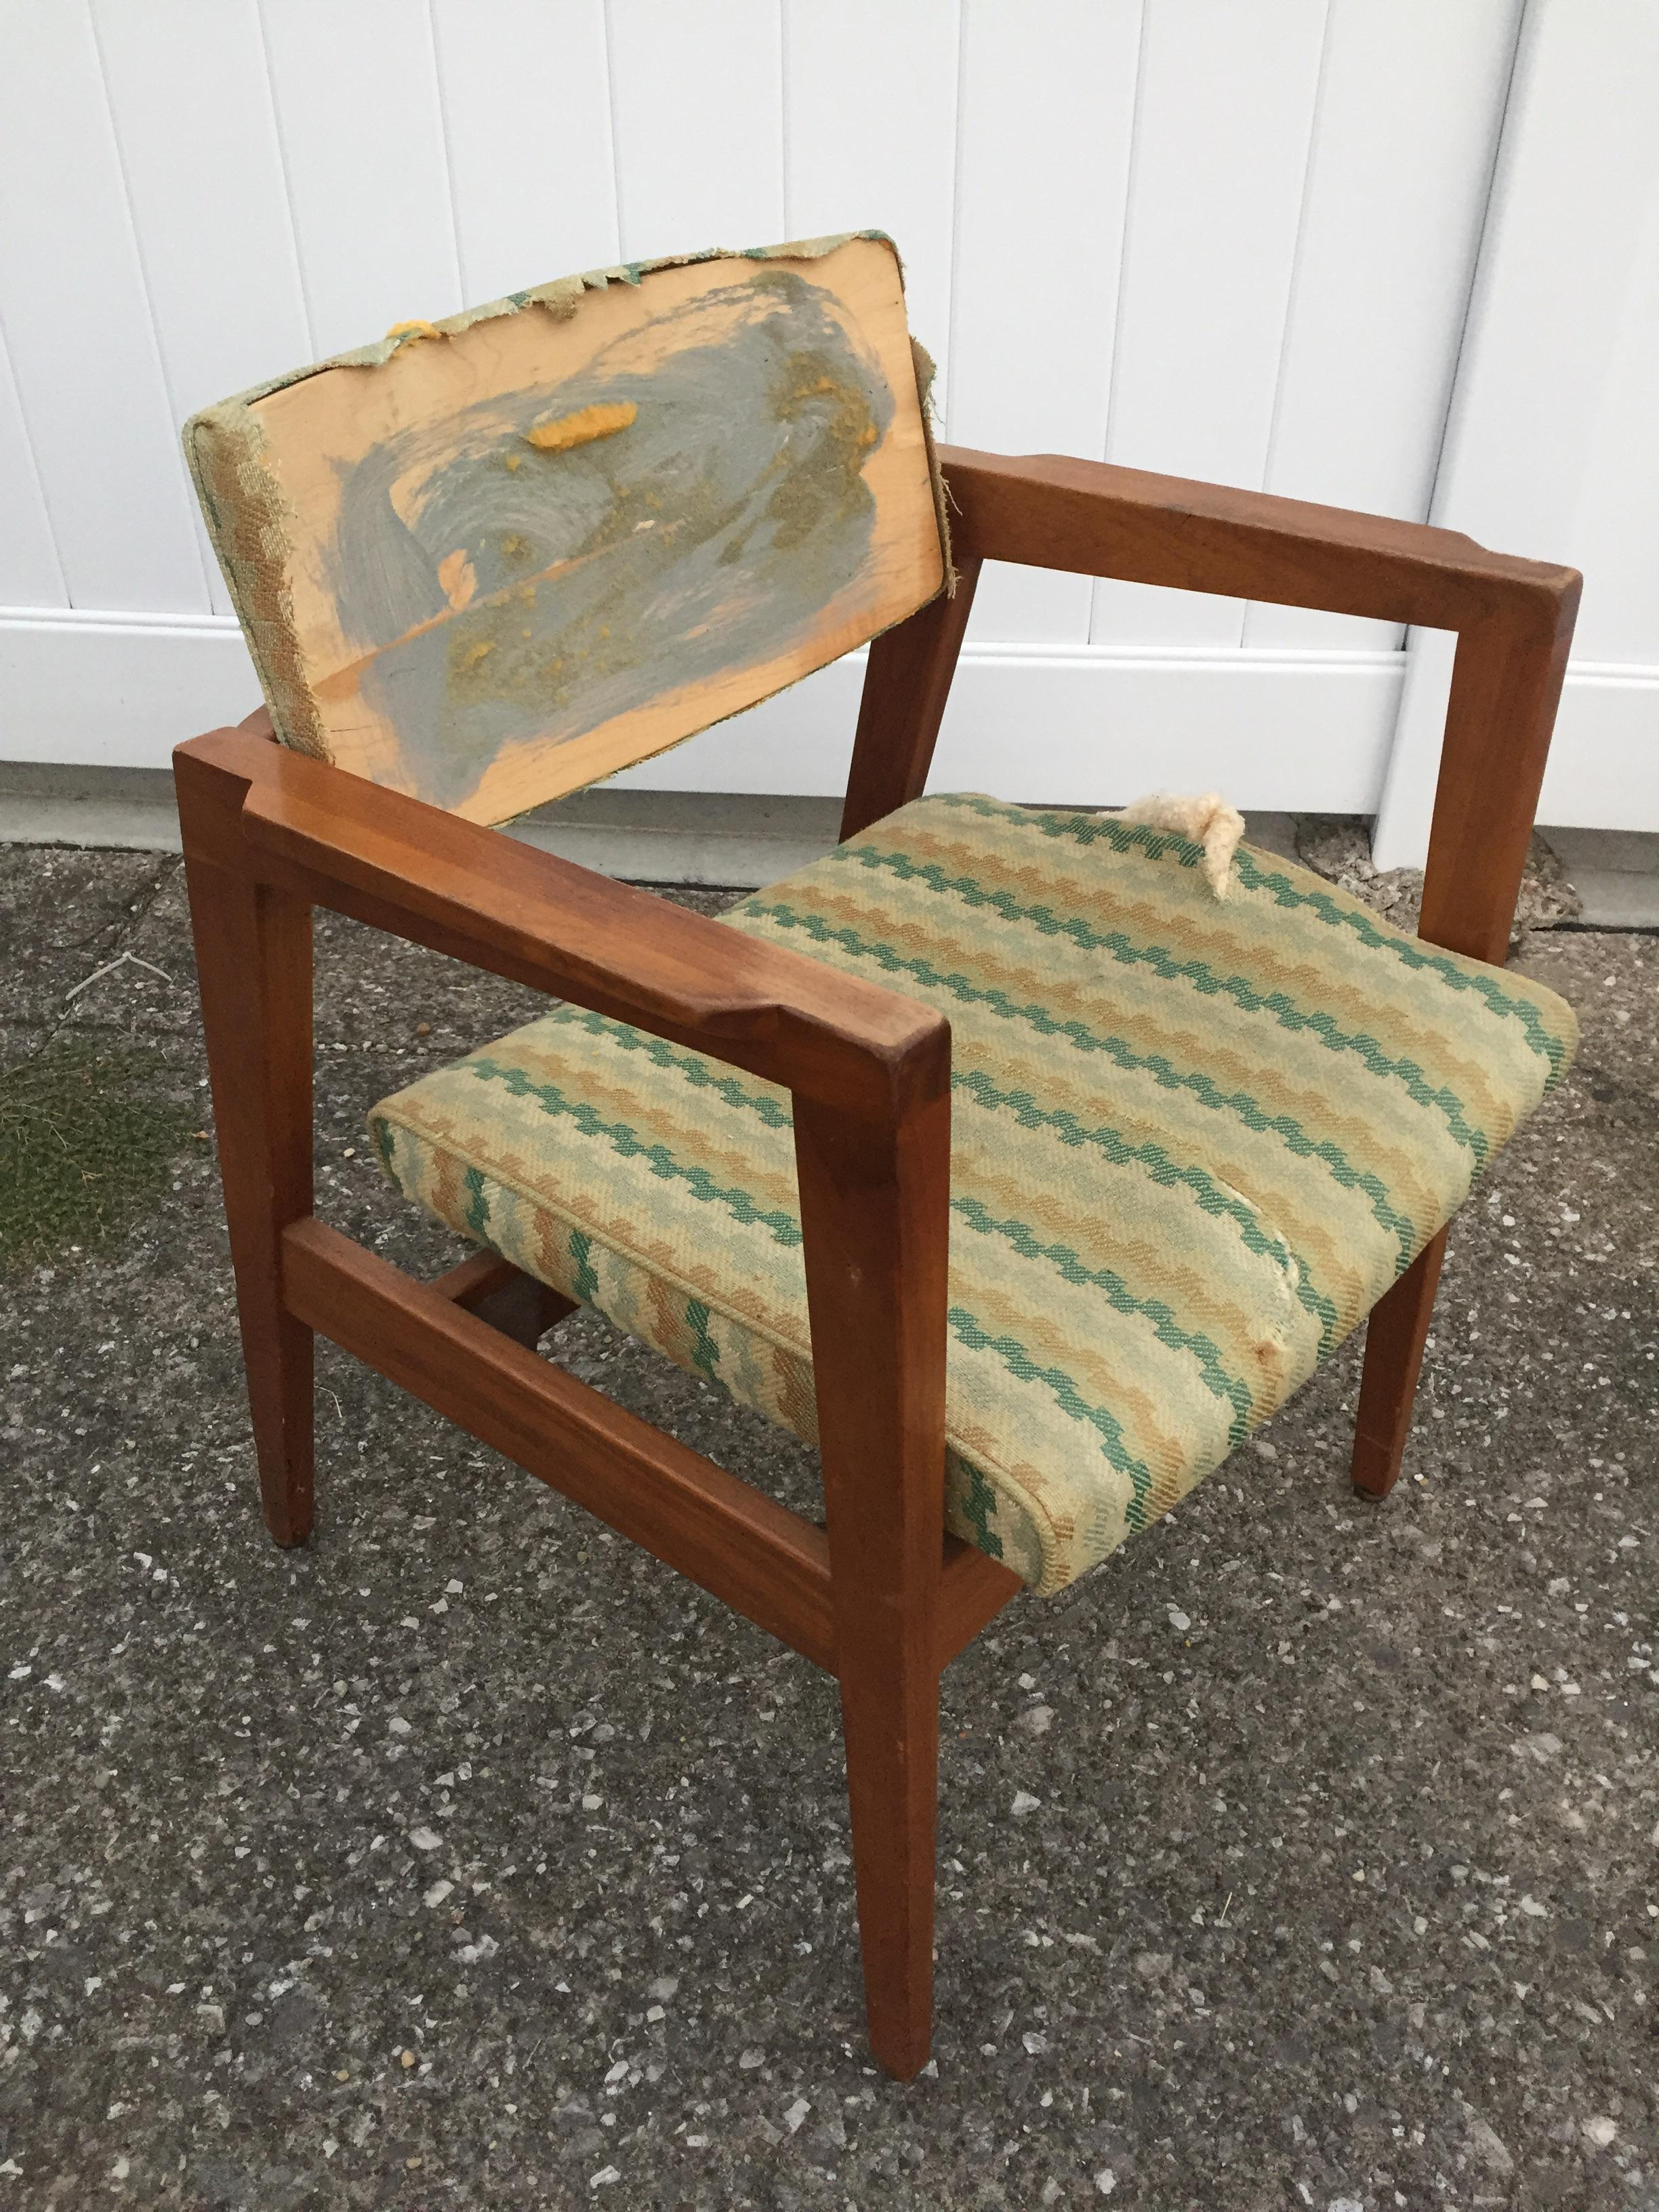 wh gunlocke chair lawn chairs in a bag got this tagged and numbered w h for 10 today